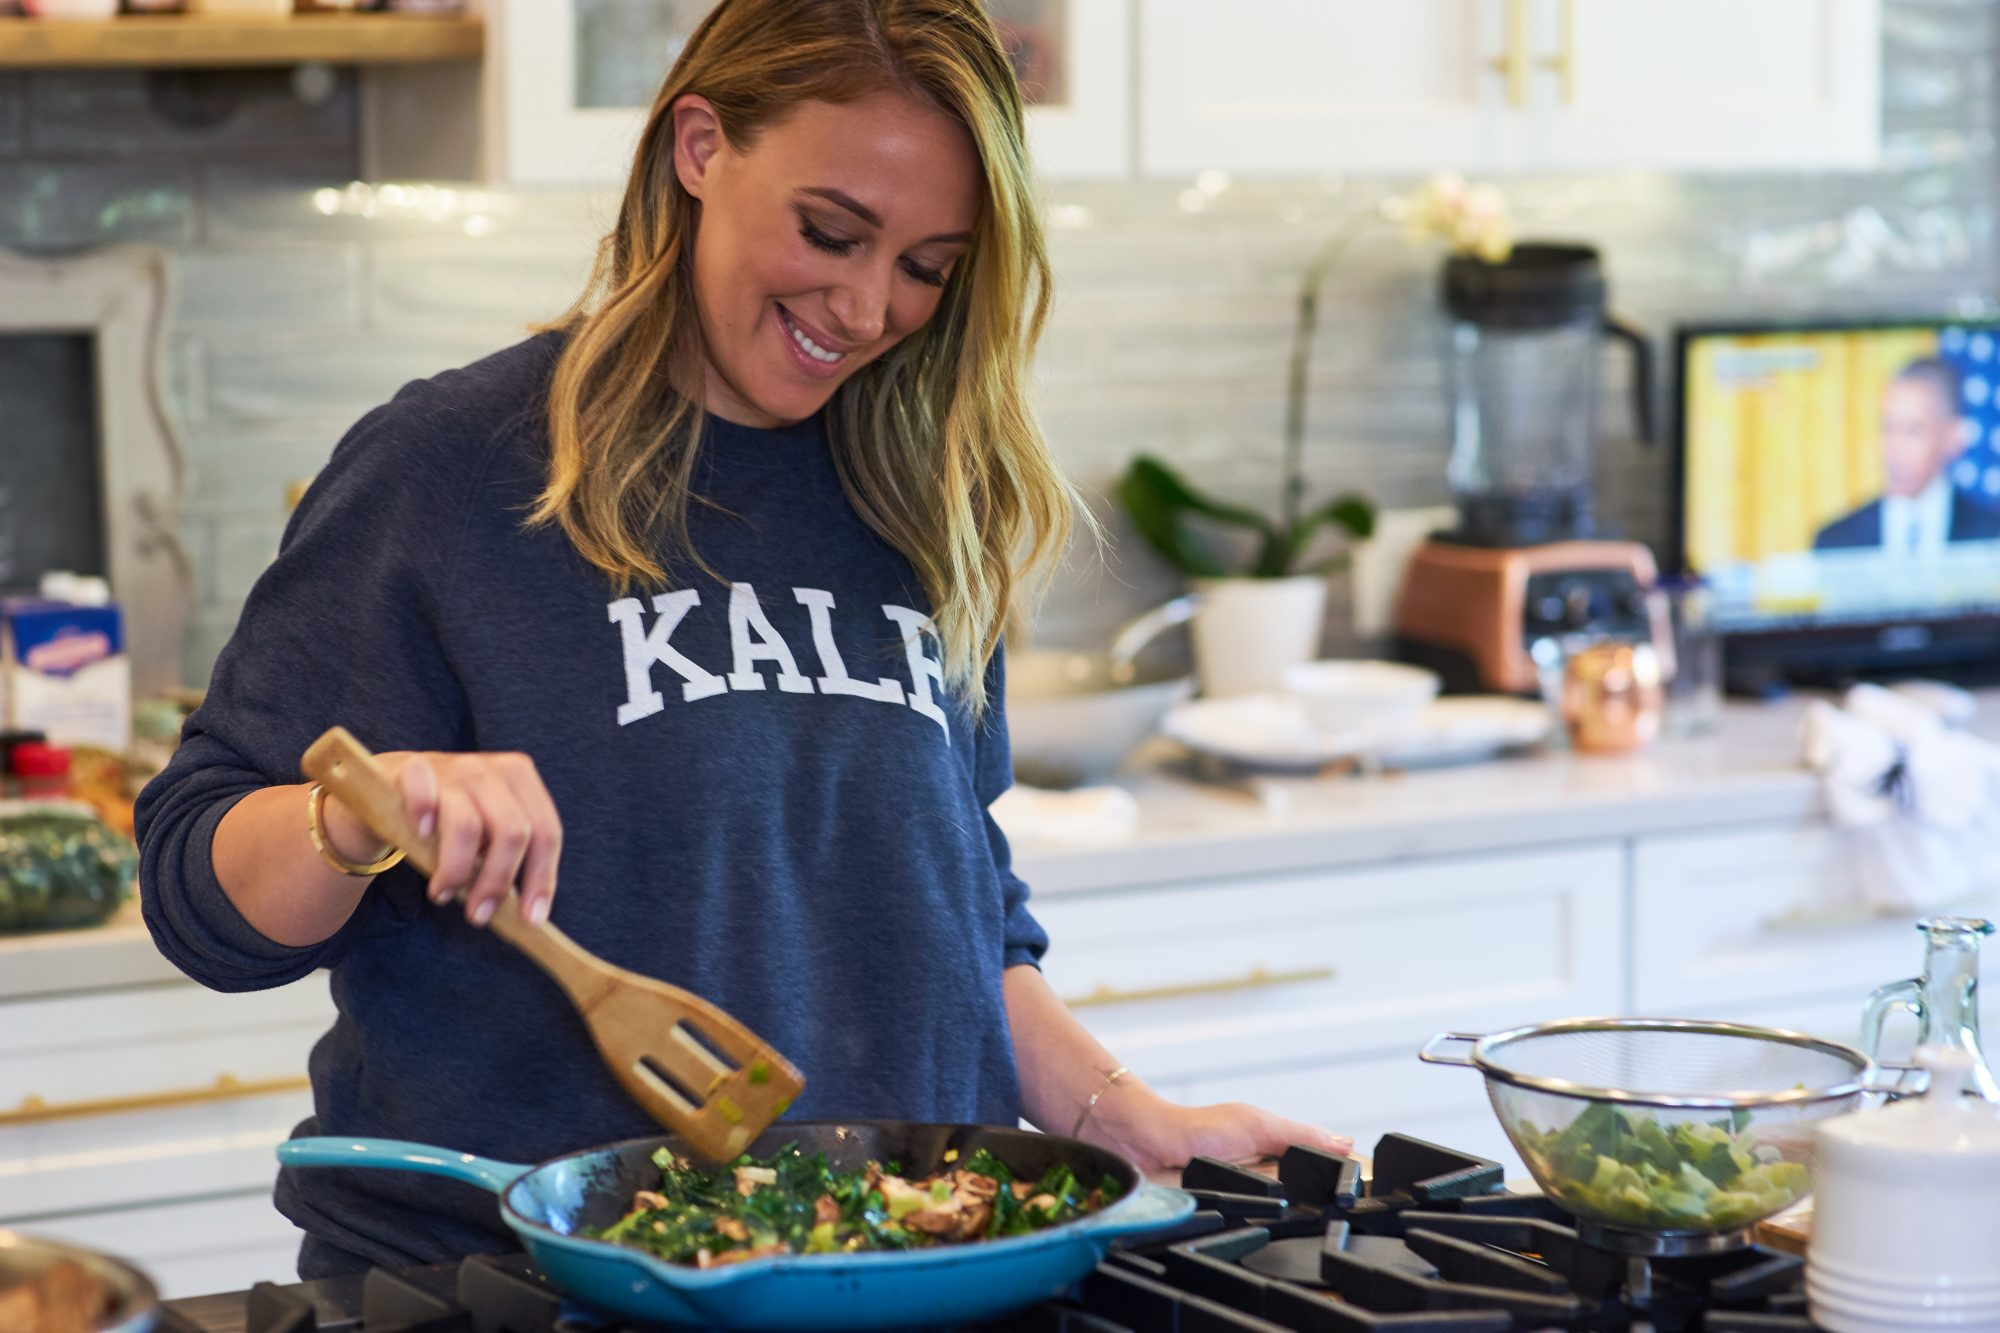 haylie-duff-cooking-image-2